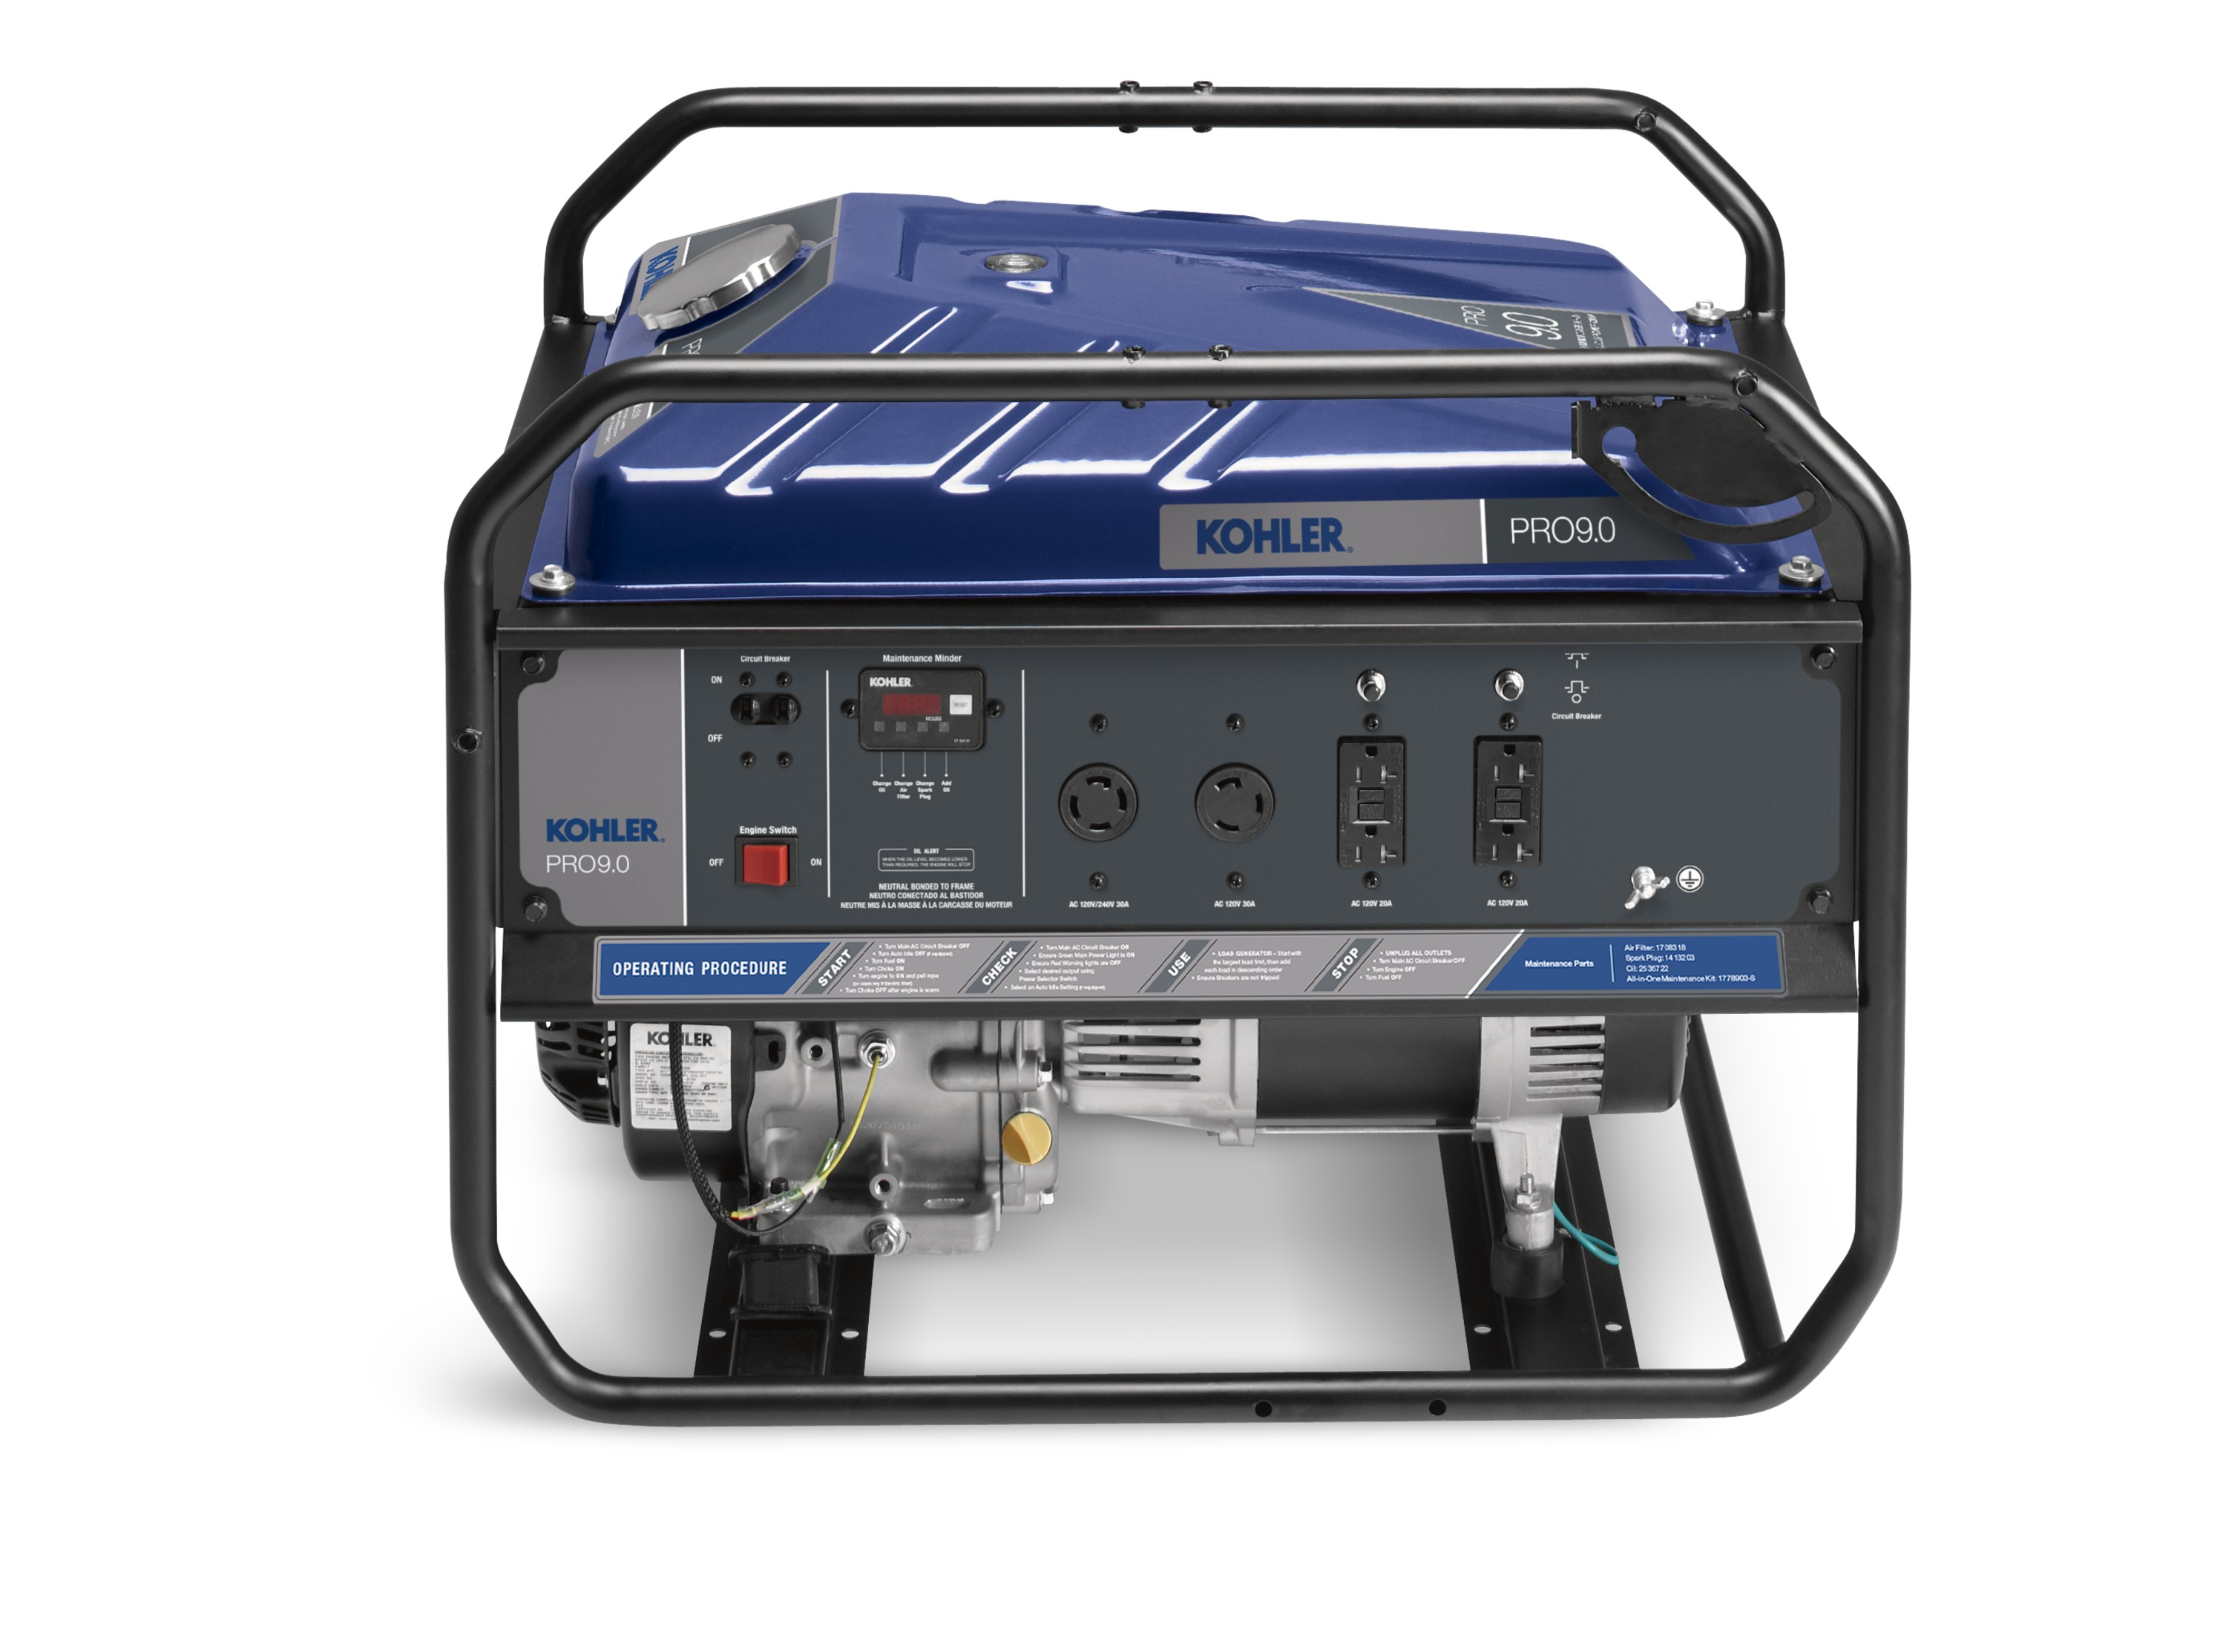 New KOHLER Portable Generator Allows Users to Select Between